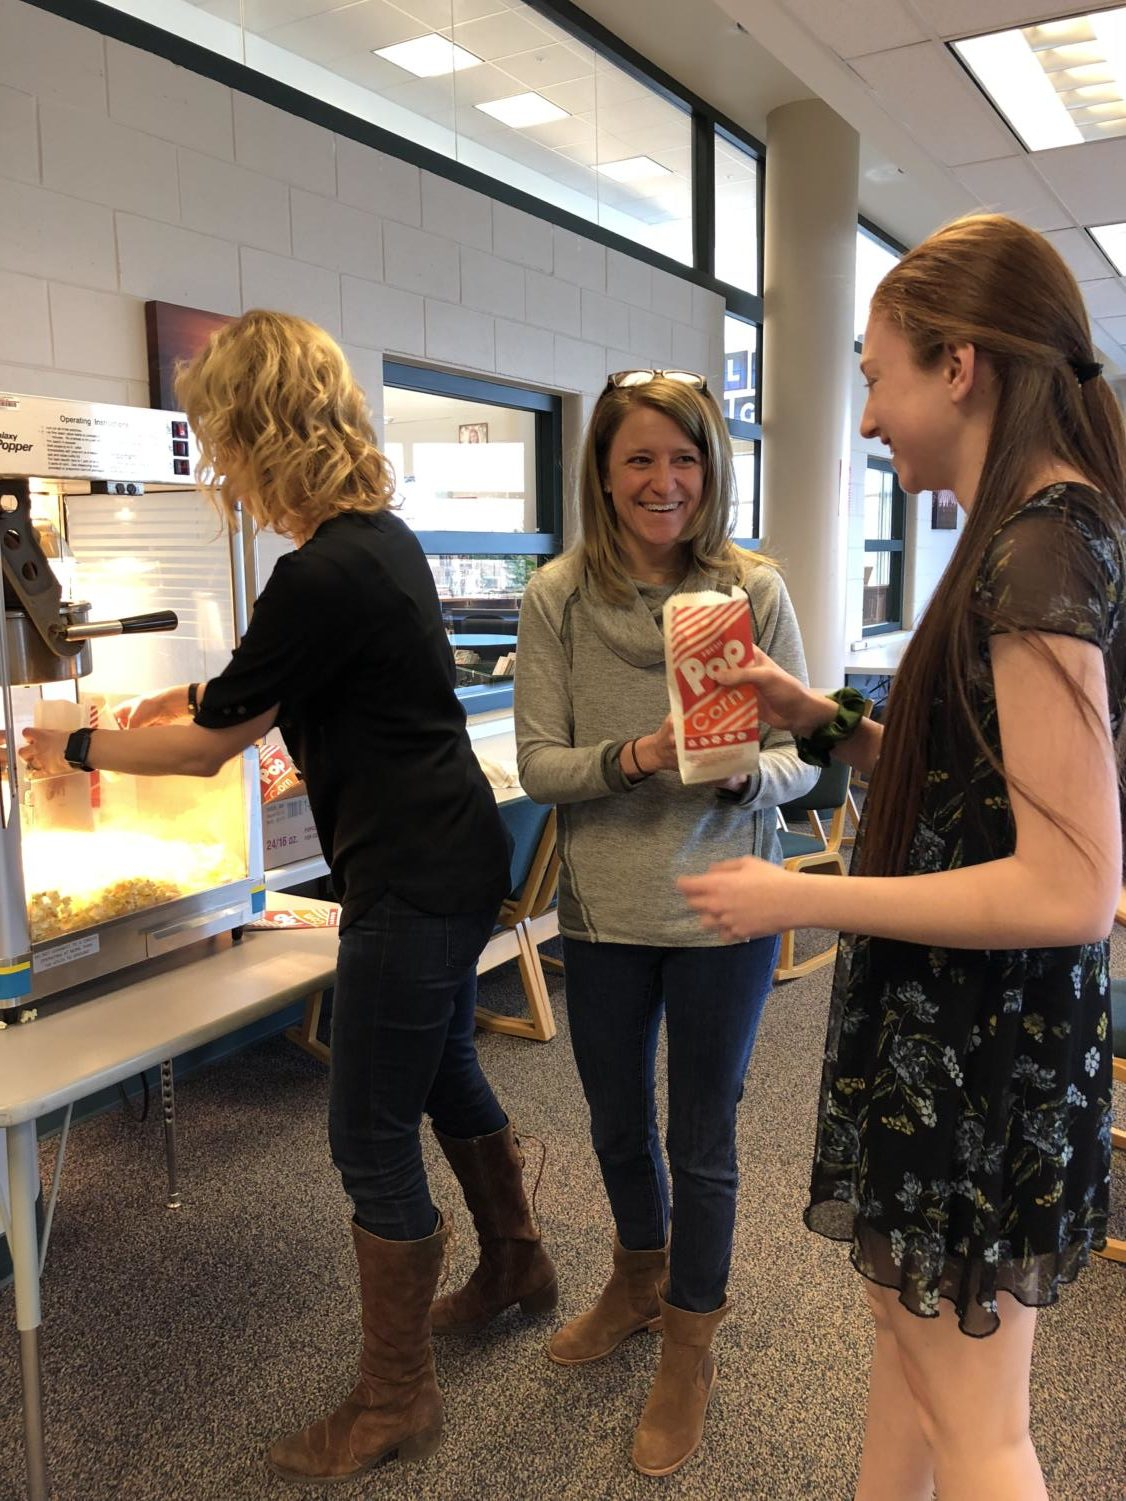 Caitlin Fagel (11) receives popcorn from Ms. Curry  and Ms. Bellito on a special day where popcorn was served at Camp Khan.